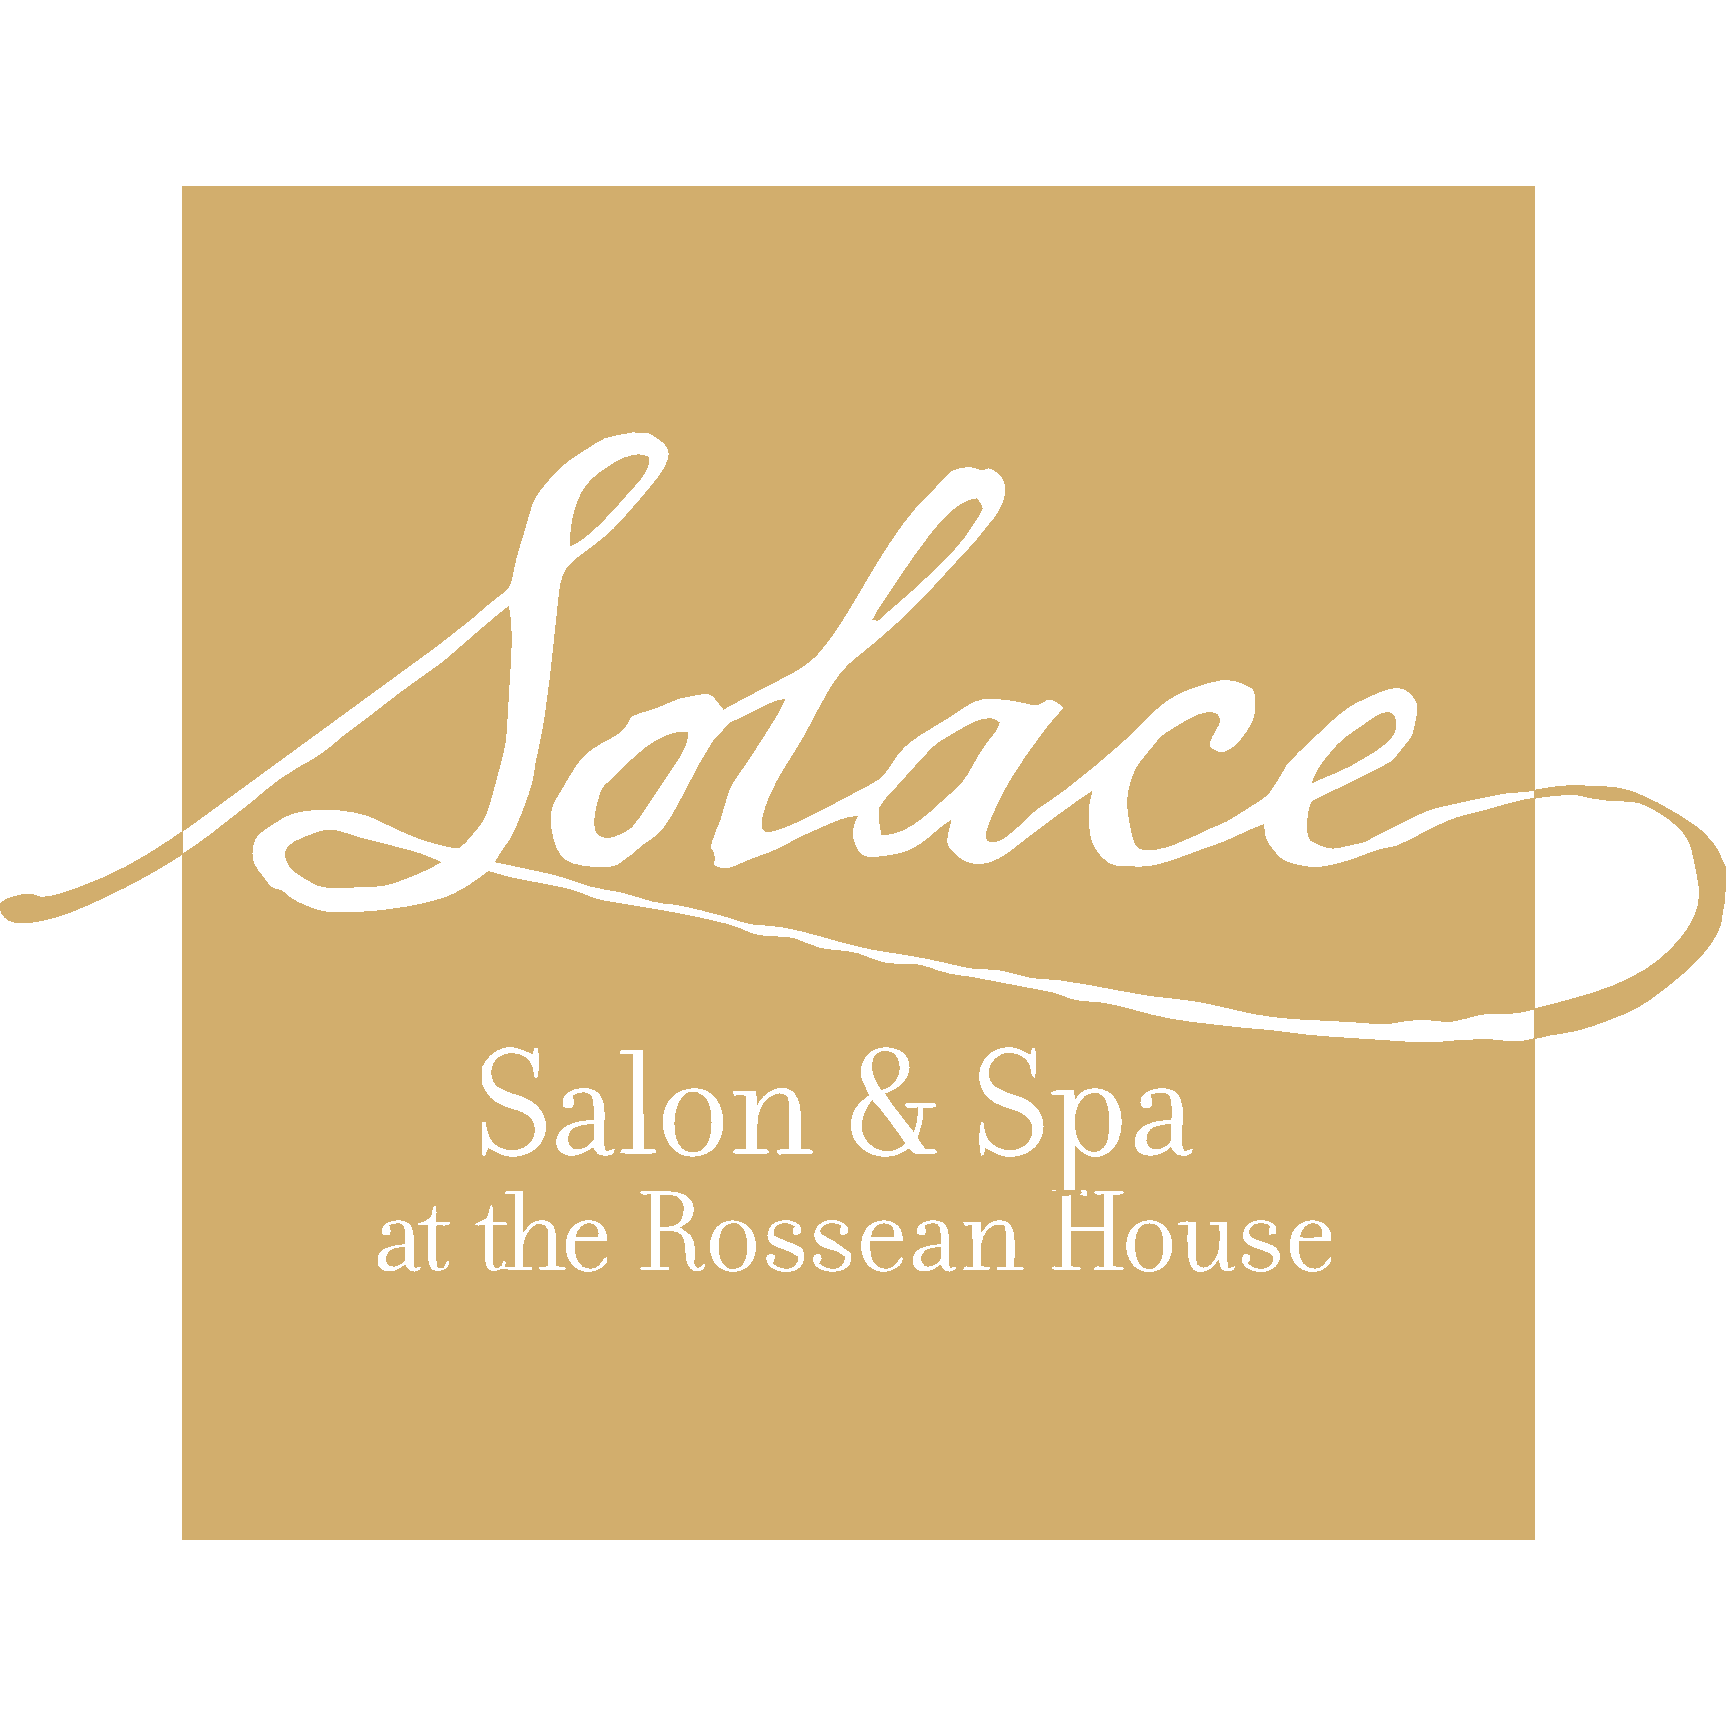 Solace Salon & Spa at the Rossean House